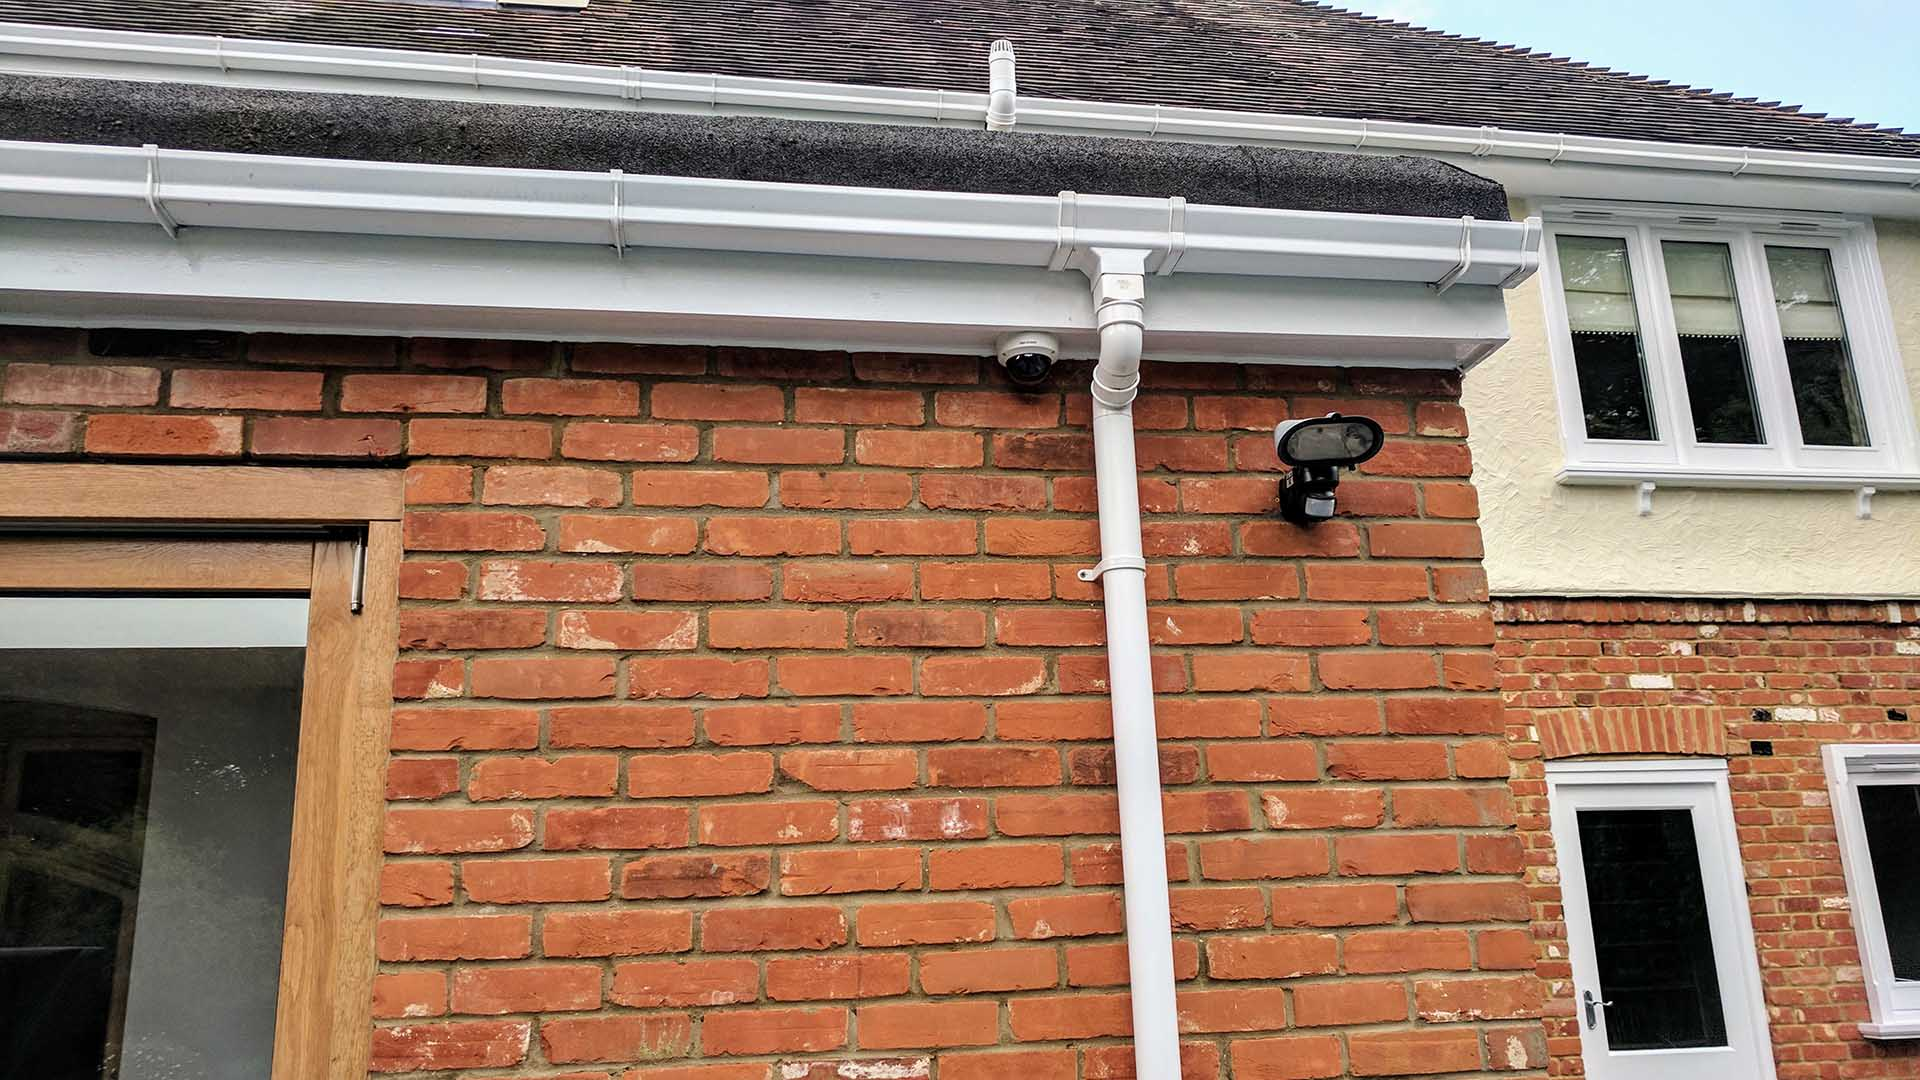 CCTV Installation in Little Baddow